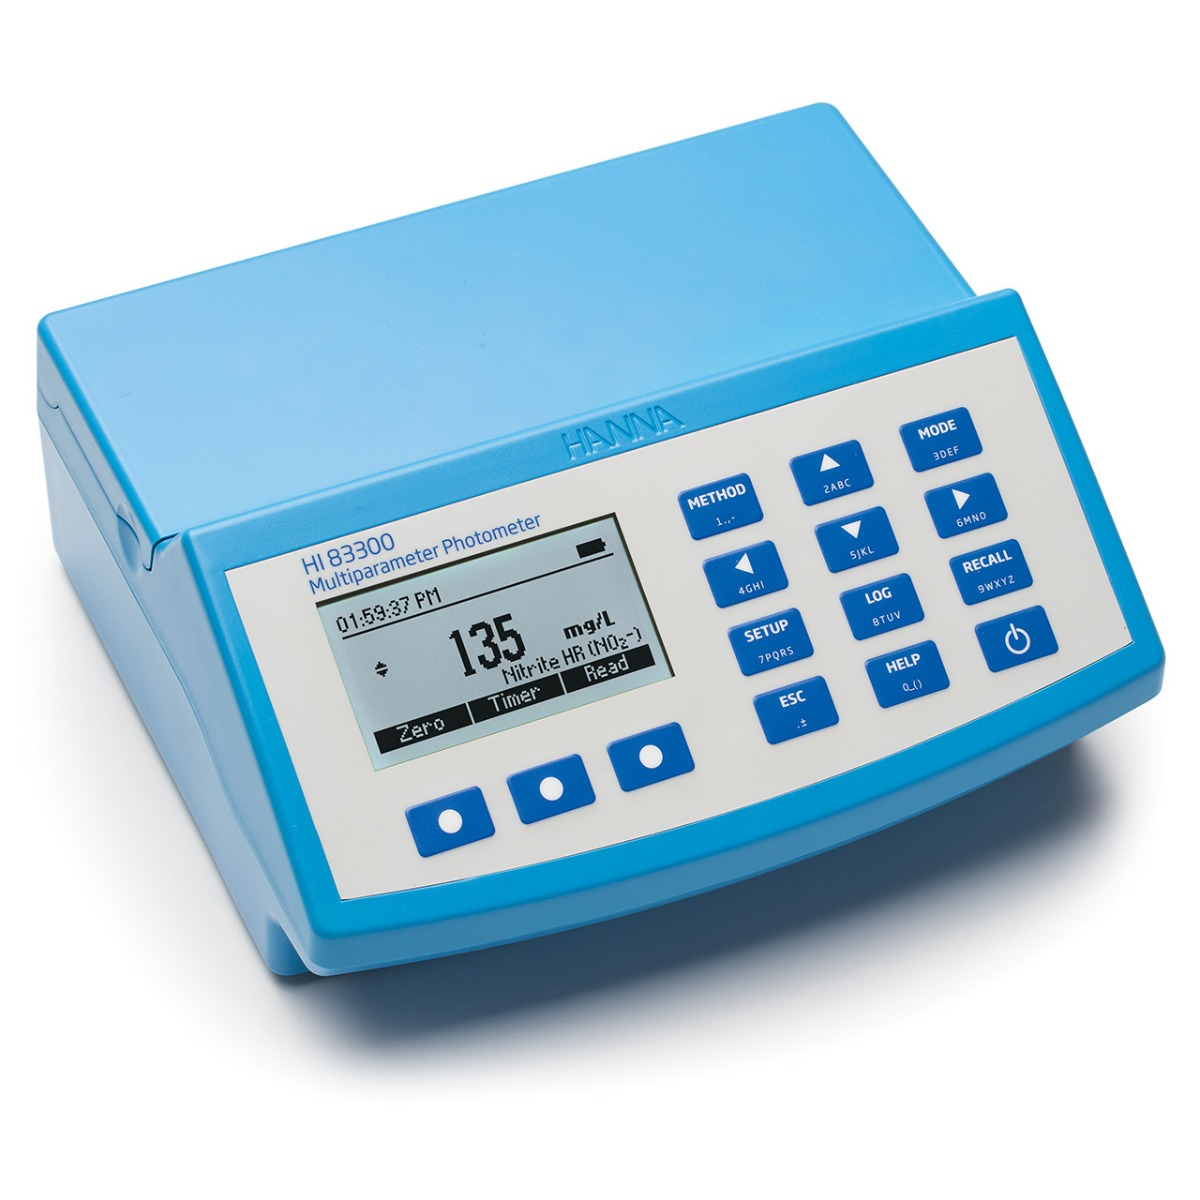 Multiparameter Benchtop Photometer and pH meter - HI83300